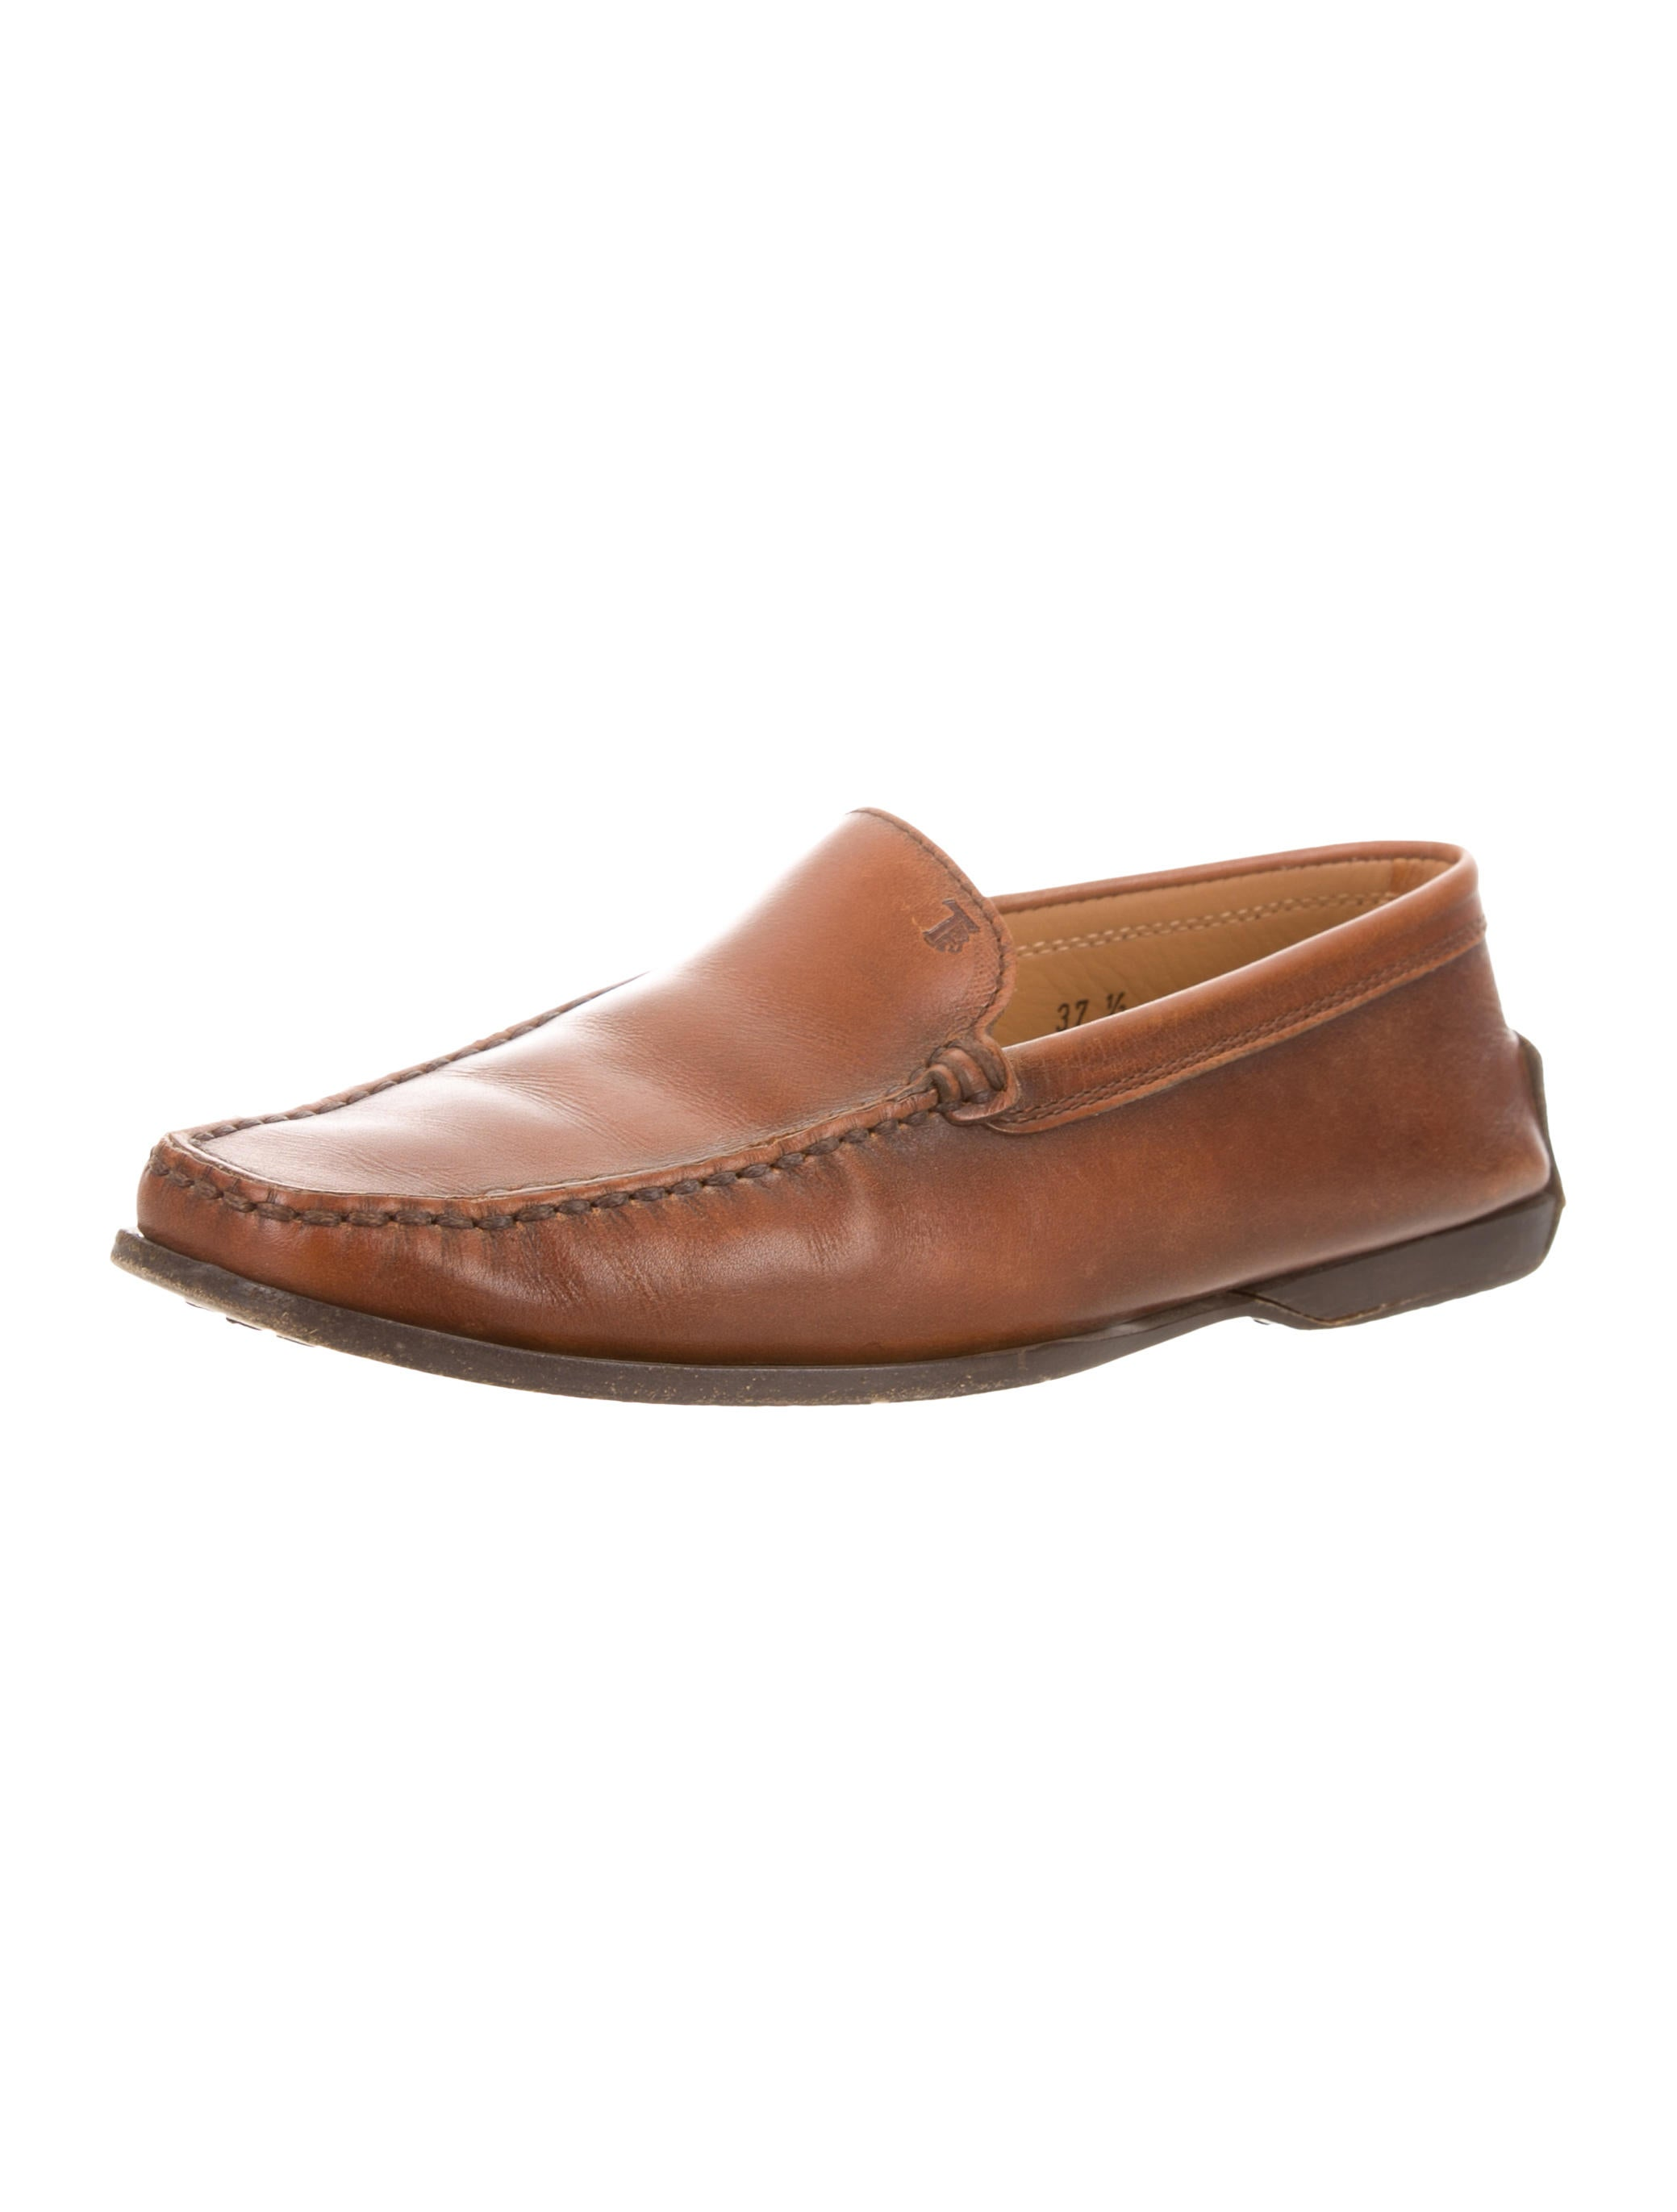 Tod's Leather Round-Toe Loafers cheap sale classic free shipping pay with paypal 594WwhC4HM